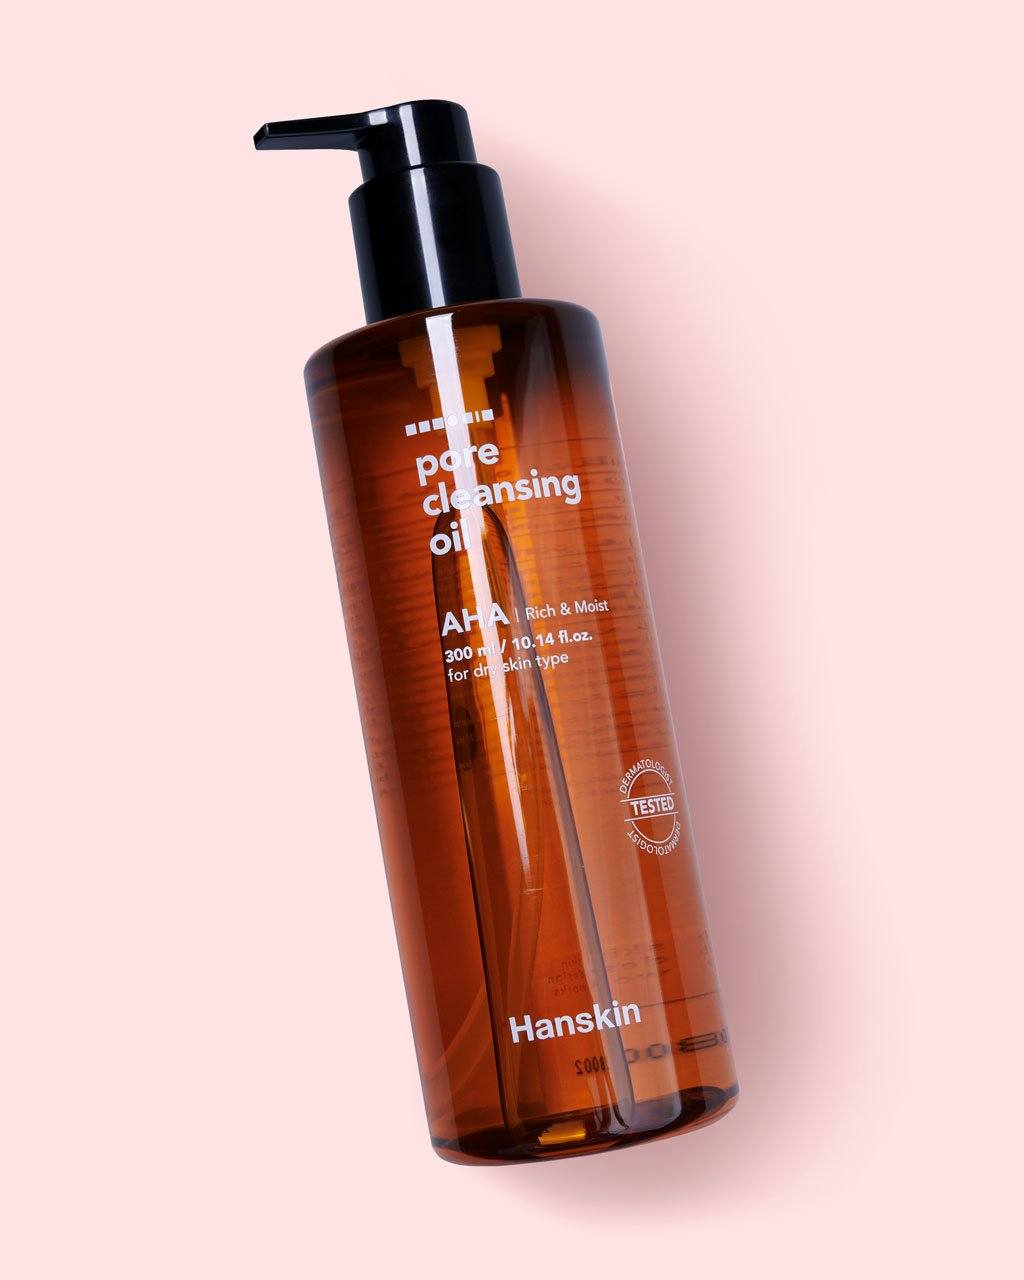 Hanskin Pore Cleansing Oil [AHA]